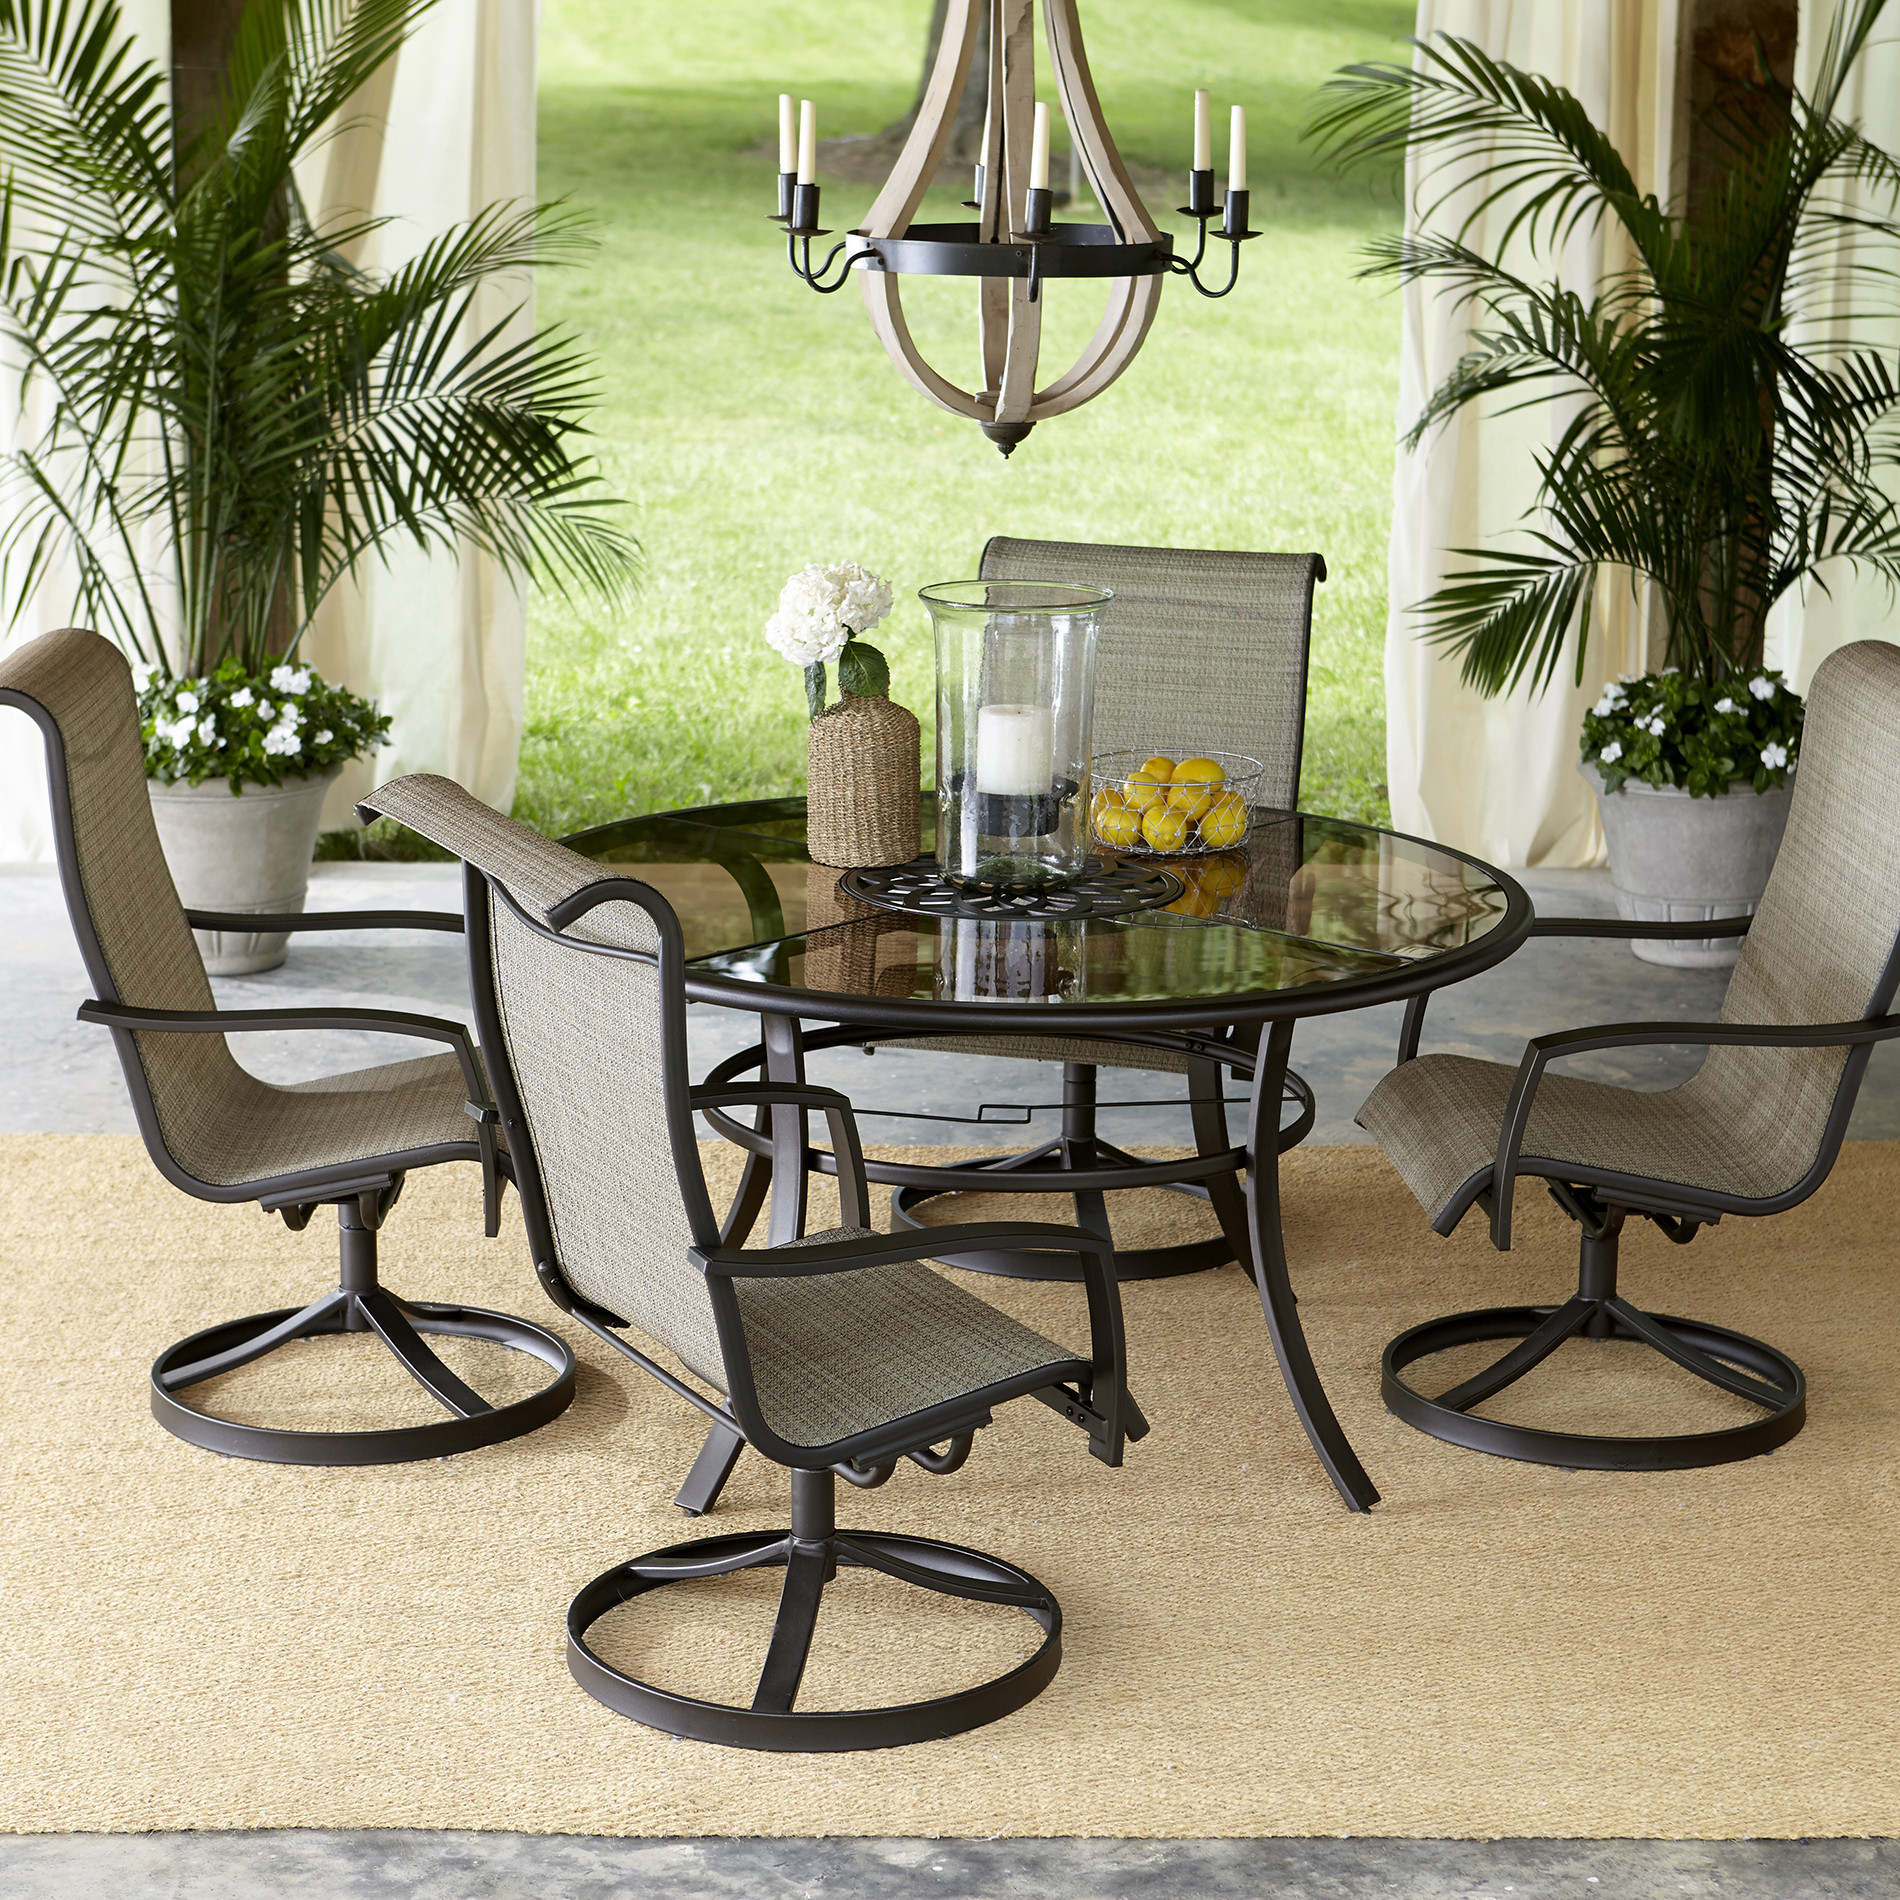 Best ideas about Patio Dining Set . Save or Pin Garden Oasis Providence 5 Piece Swivel Dining Set Now.